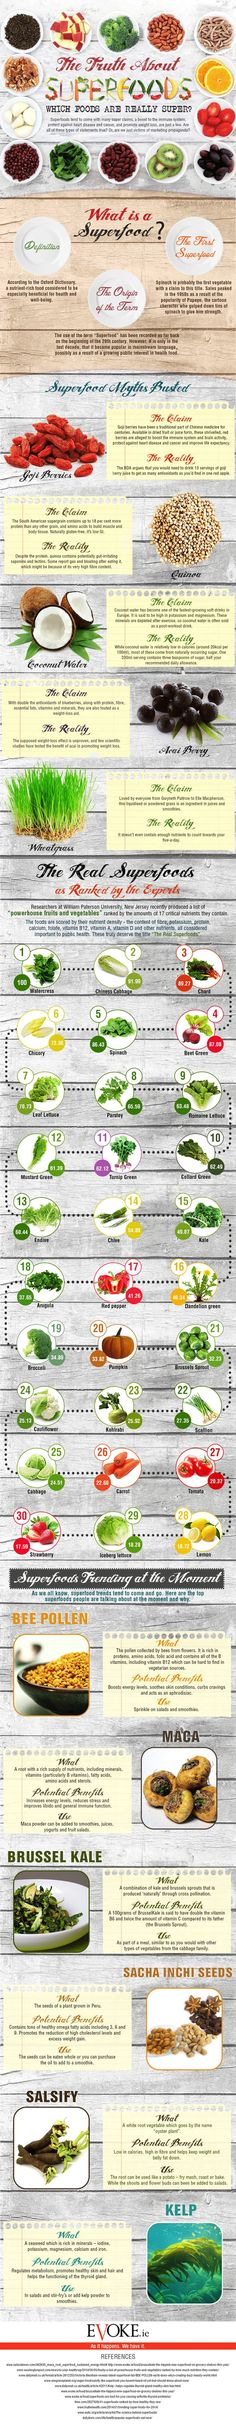 Top 20 Superfoods in the World Infographic. Topic: heealthy food,watercress, vegetables, spinach, red pepper, pumpkin, goji berries, quinoa, brocolli acai berry, fruits, wheatgrass, vegetarian, vegan.